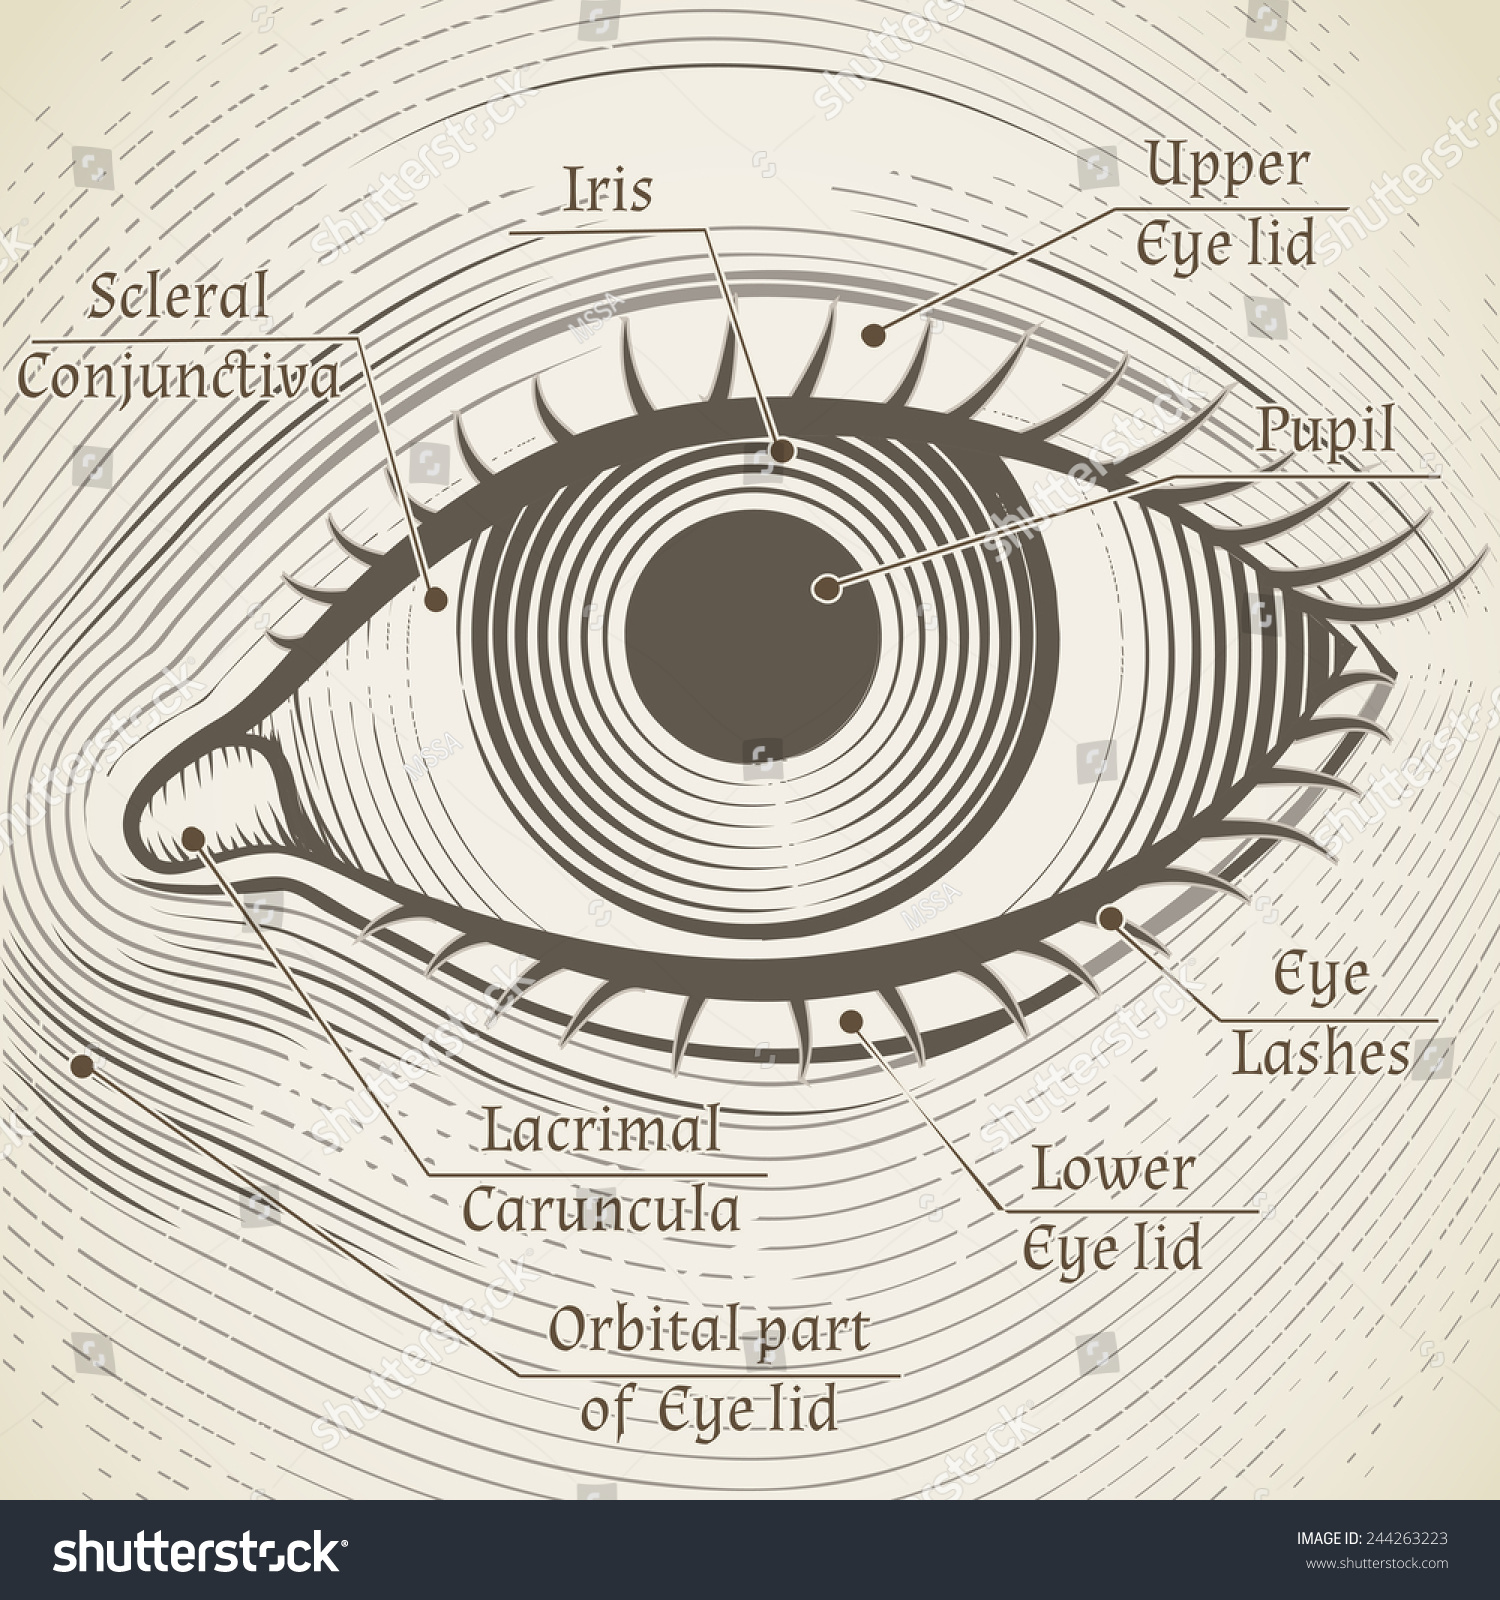 Human eye etching captions cornea iris stock illustration 244263223 human eye etching with captions cornea iris and pupil name parts of the ccuart Images